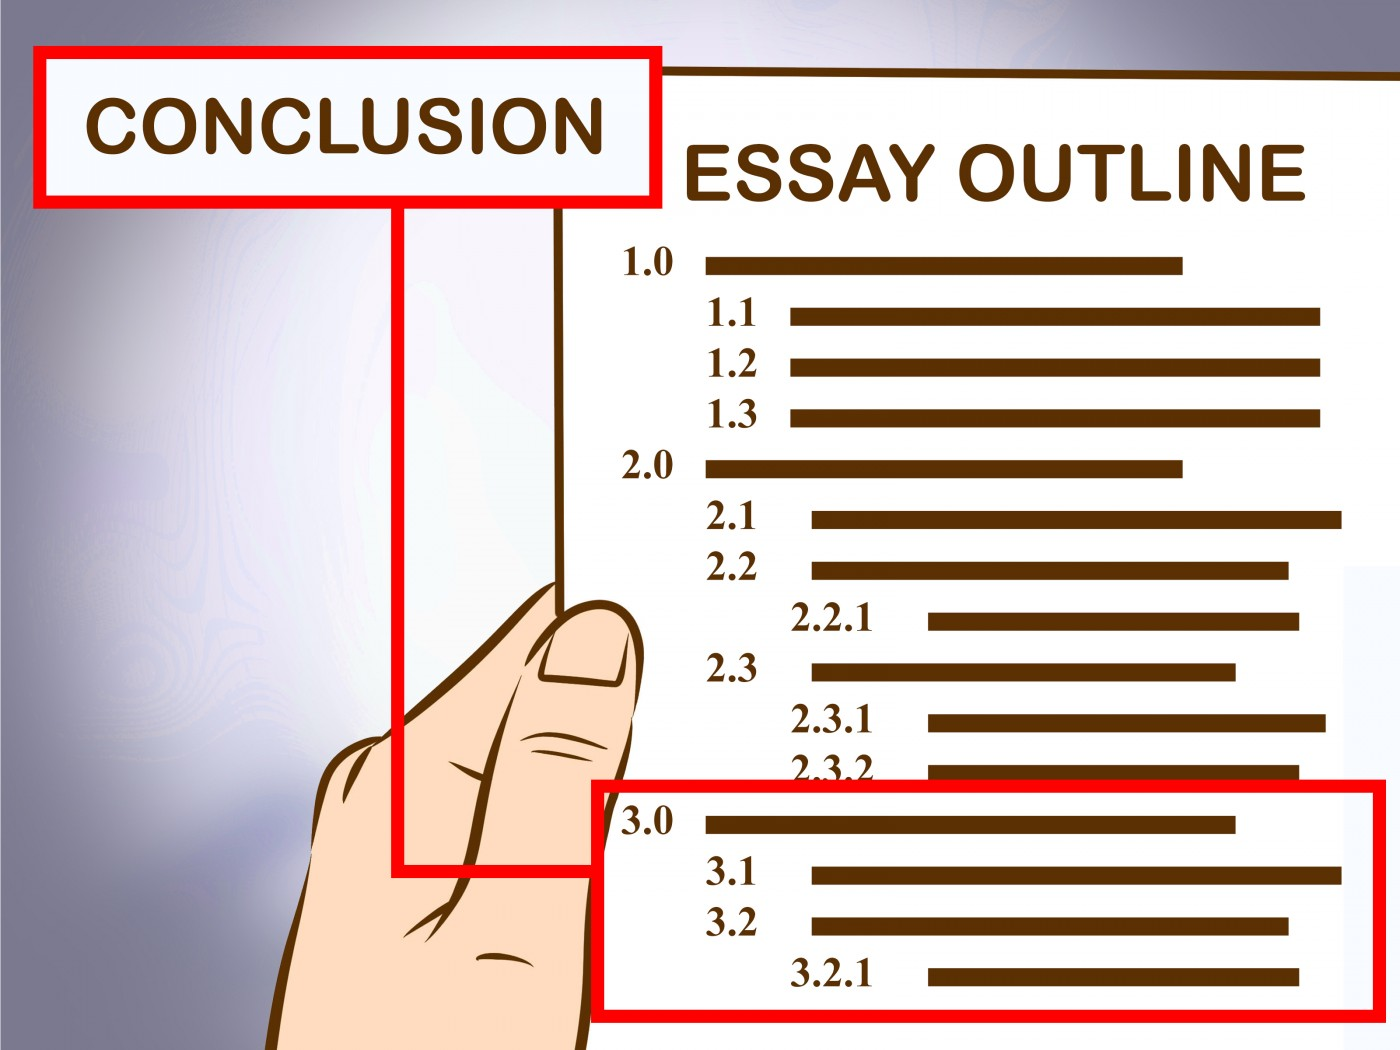 004 Write An Essay Outline Step Version Example How Excellent To For University 6th Grade 1400